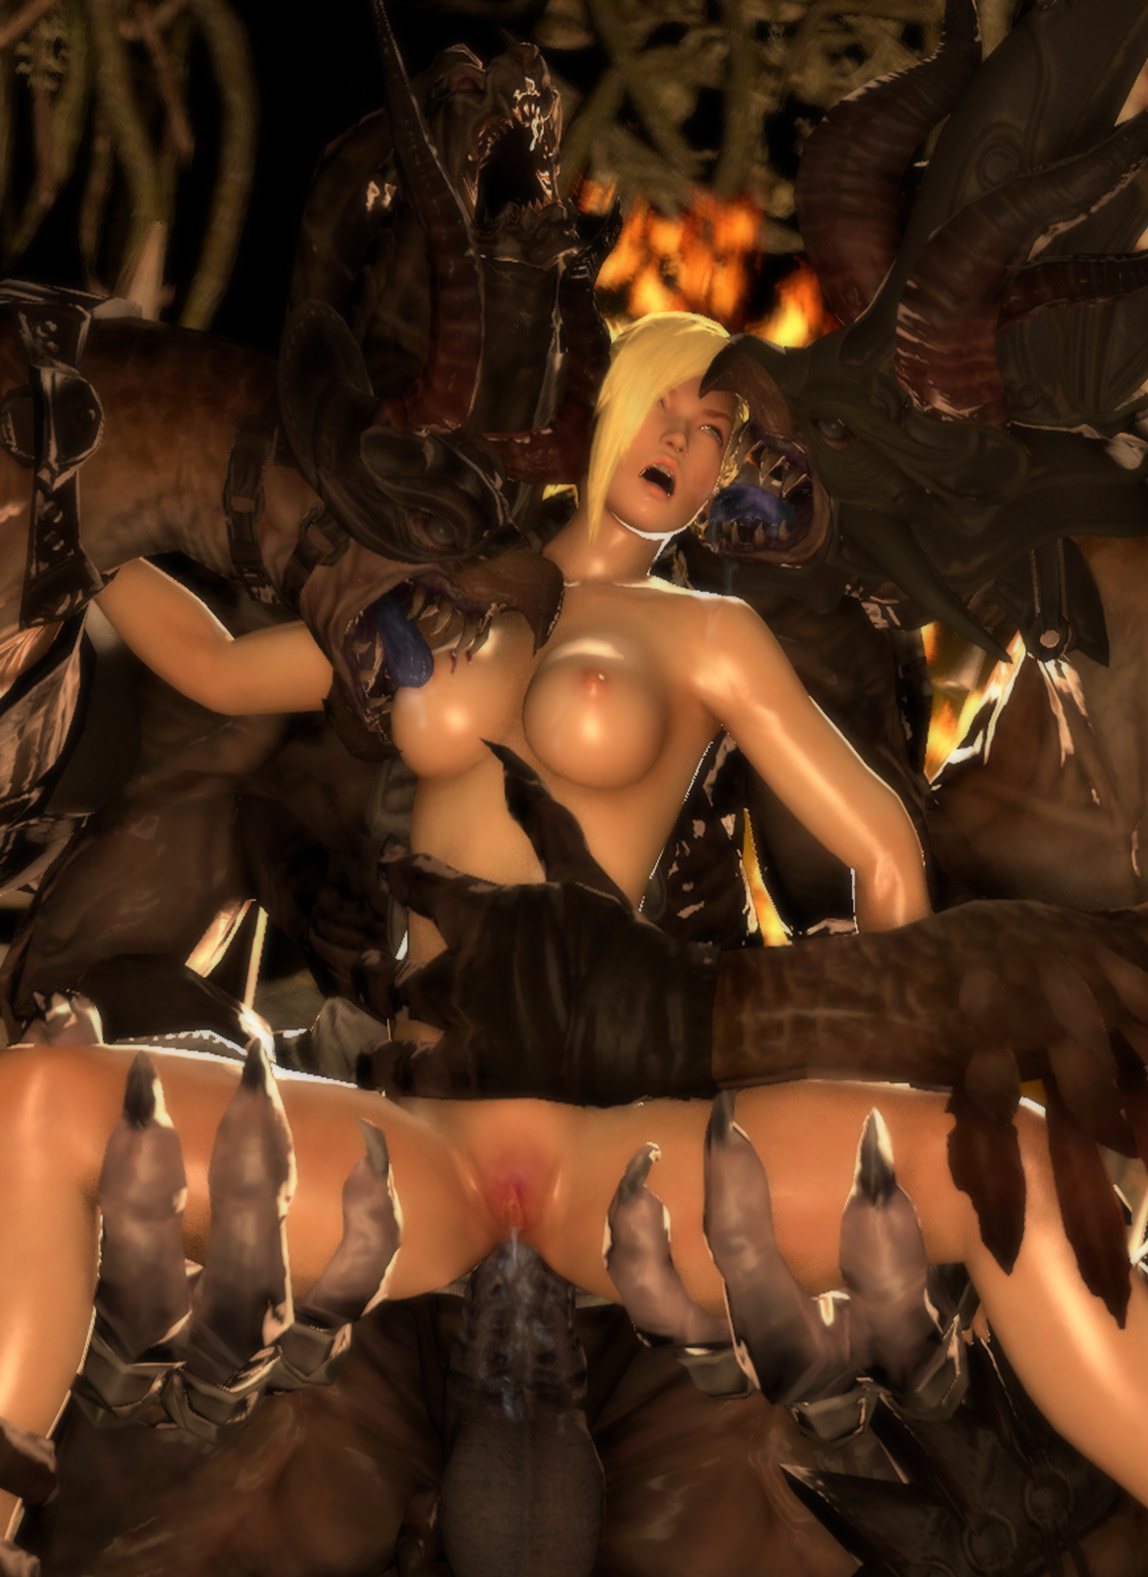 Final fantasy 14 minfilia hentai naked picture